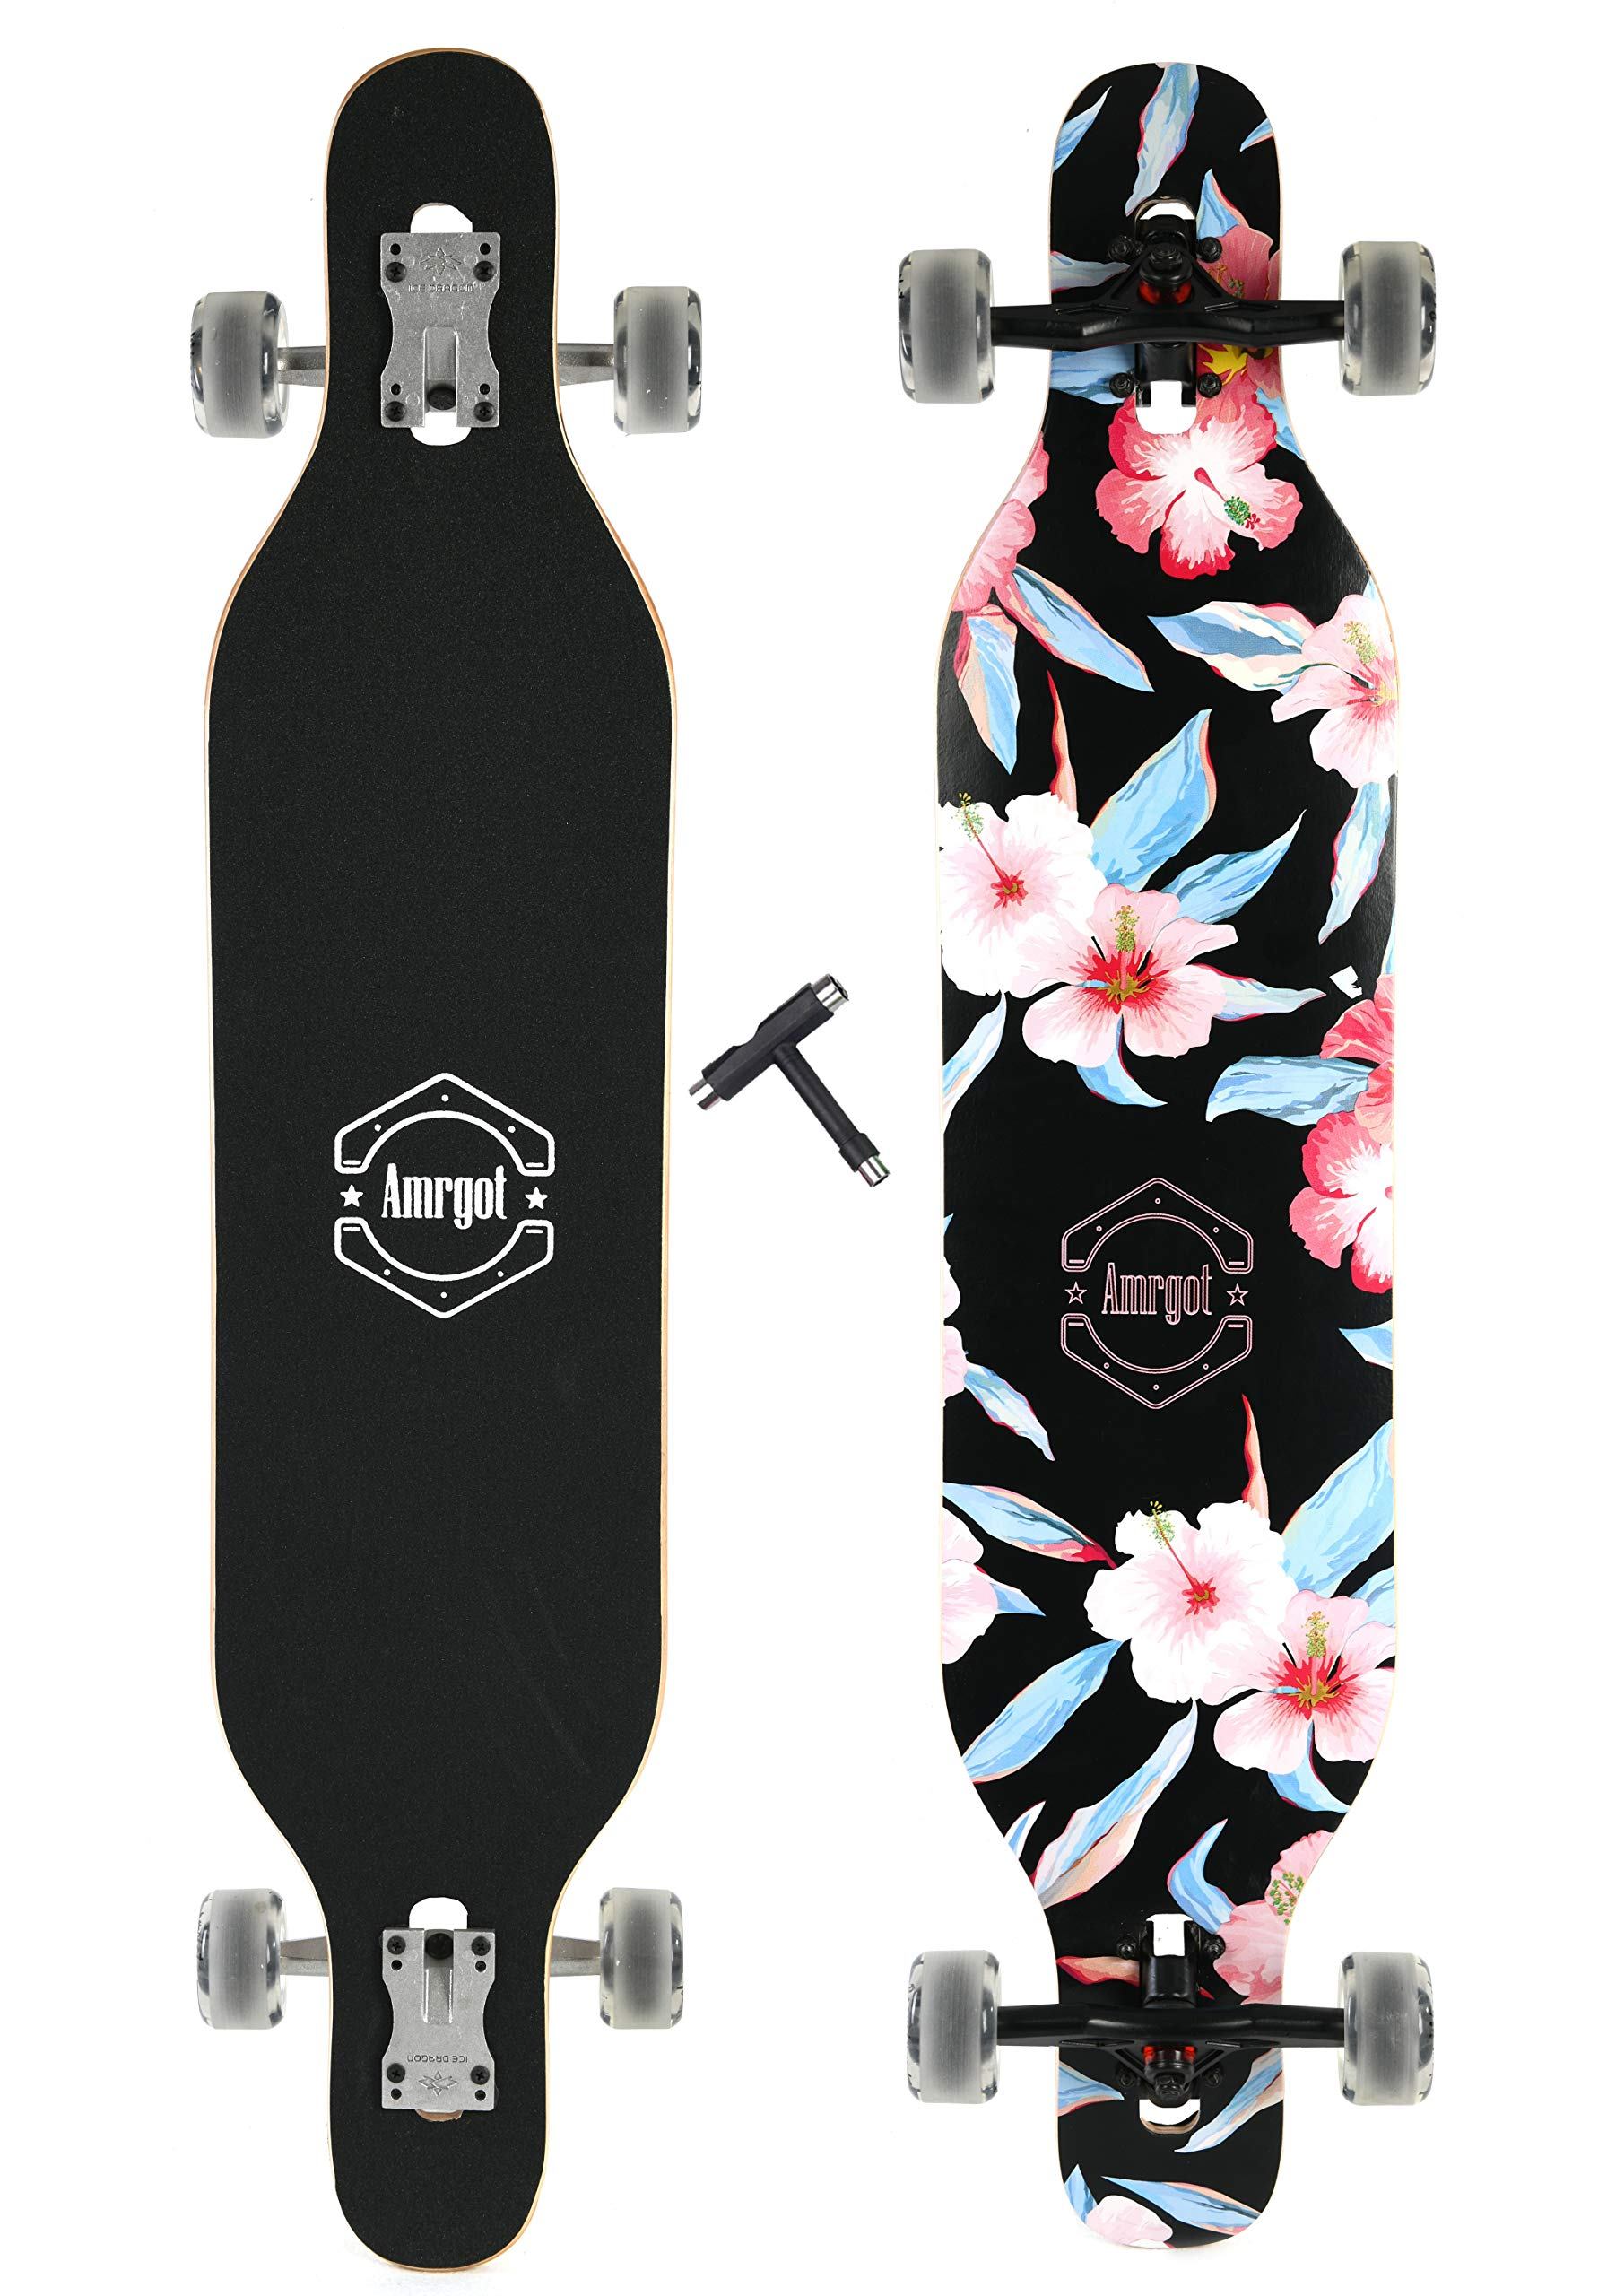 Xtreme Free Professional Speed Drop Down Complete Longboard Skateboard(41 Inches) (5)